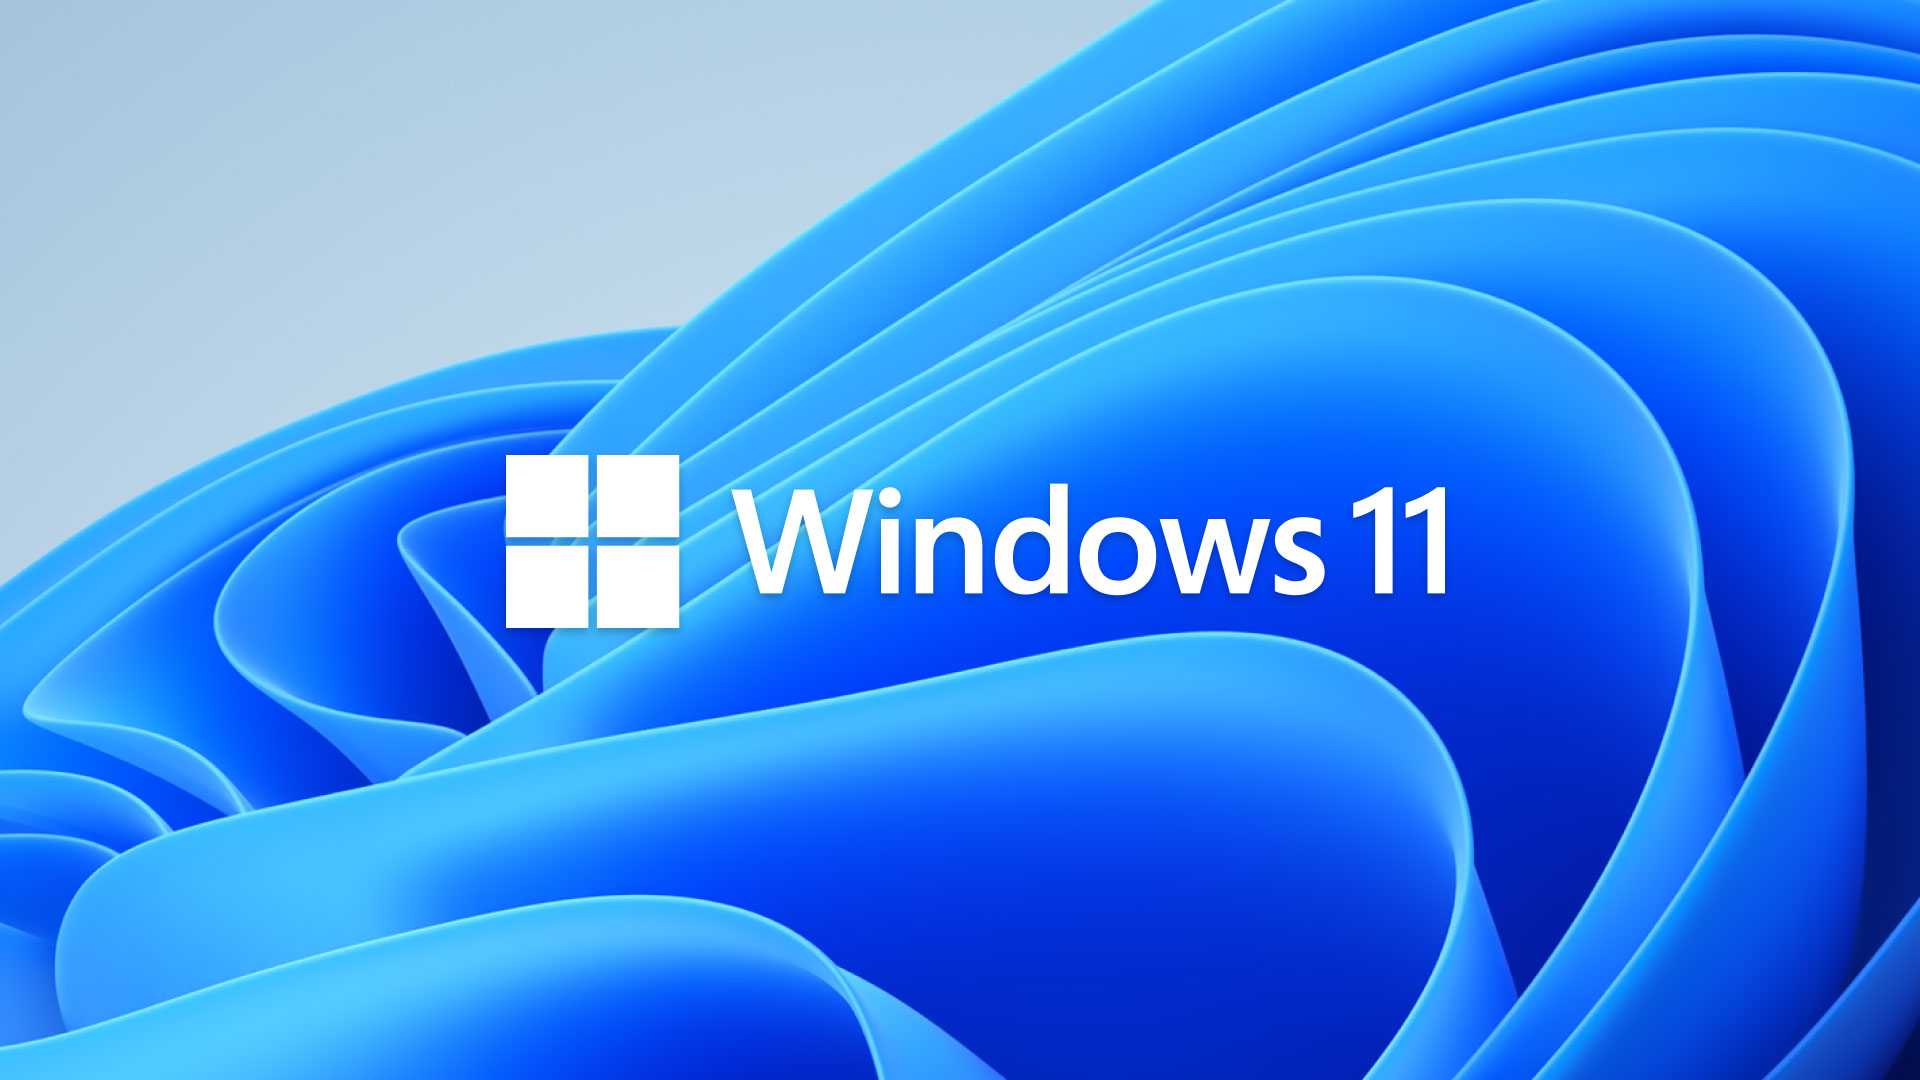 Hardware vendors can avoid TPM 20 for Windows 11 if needed 1920x1080